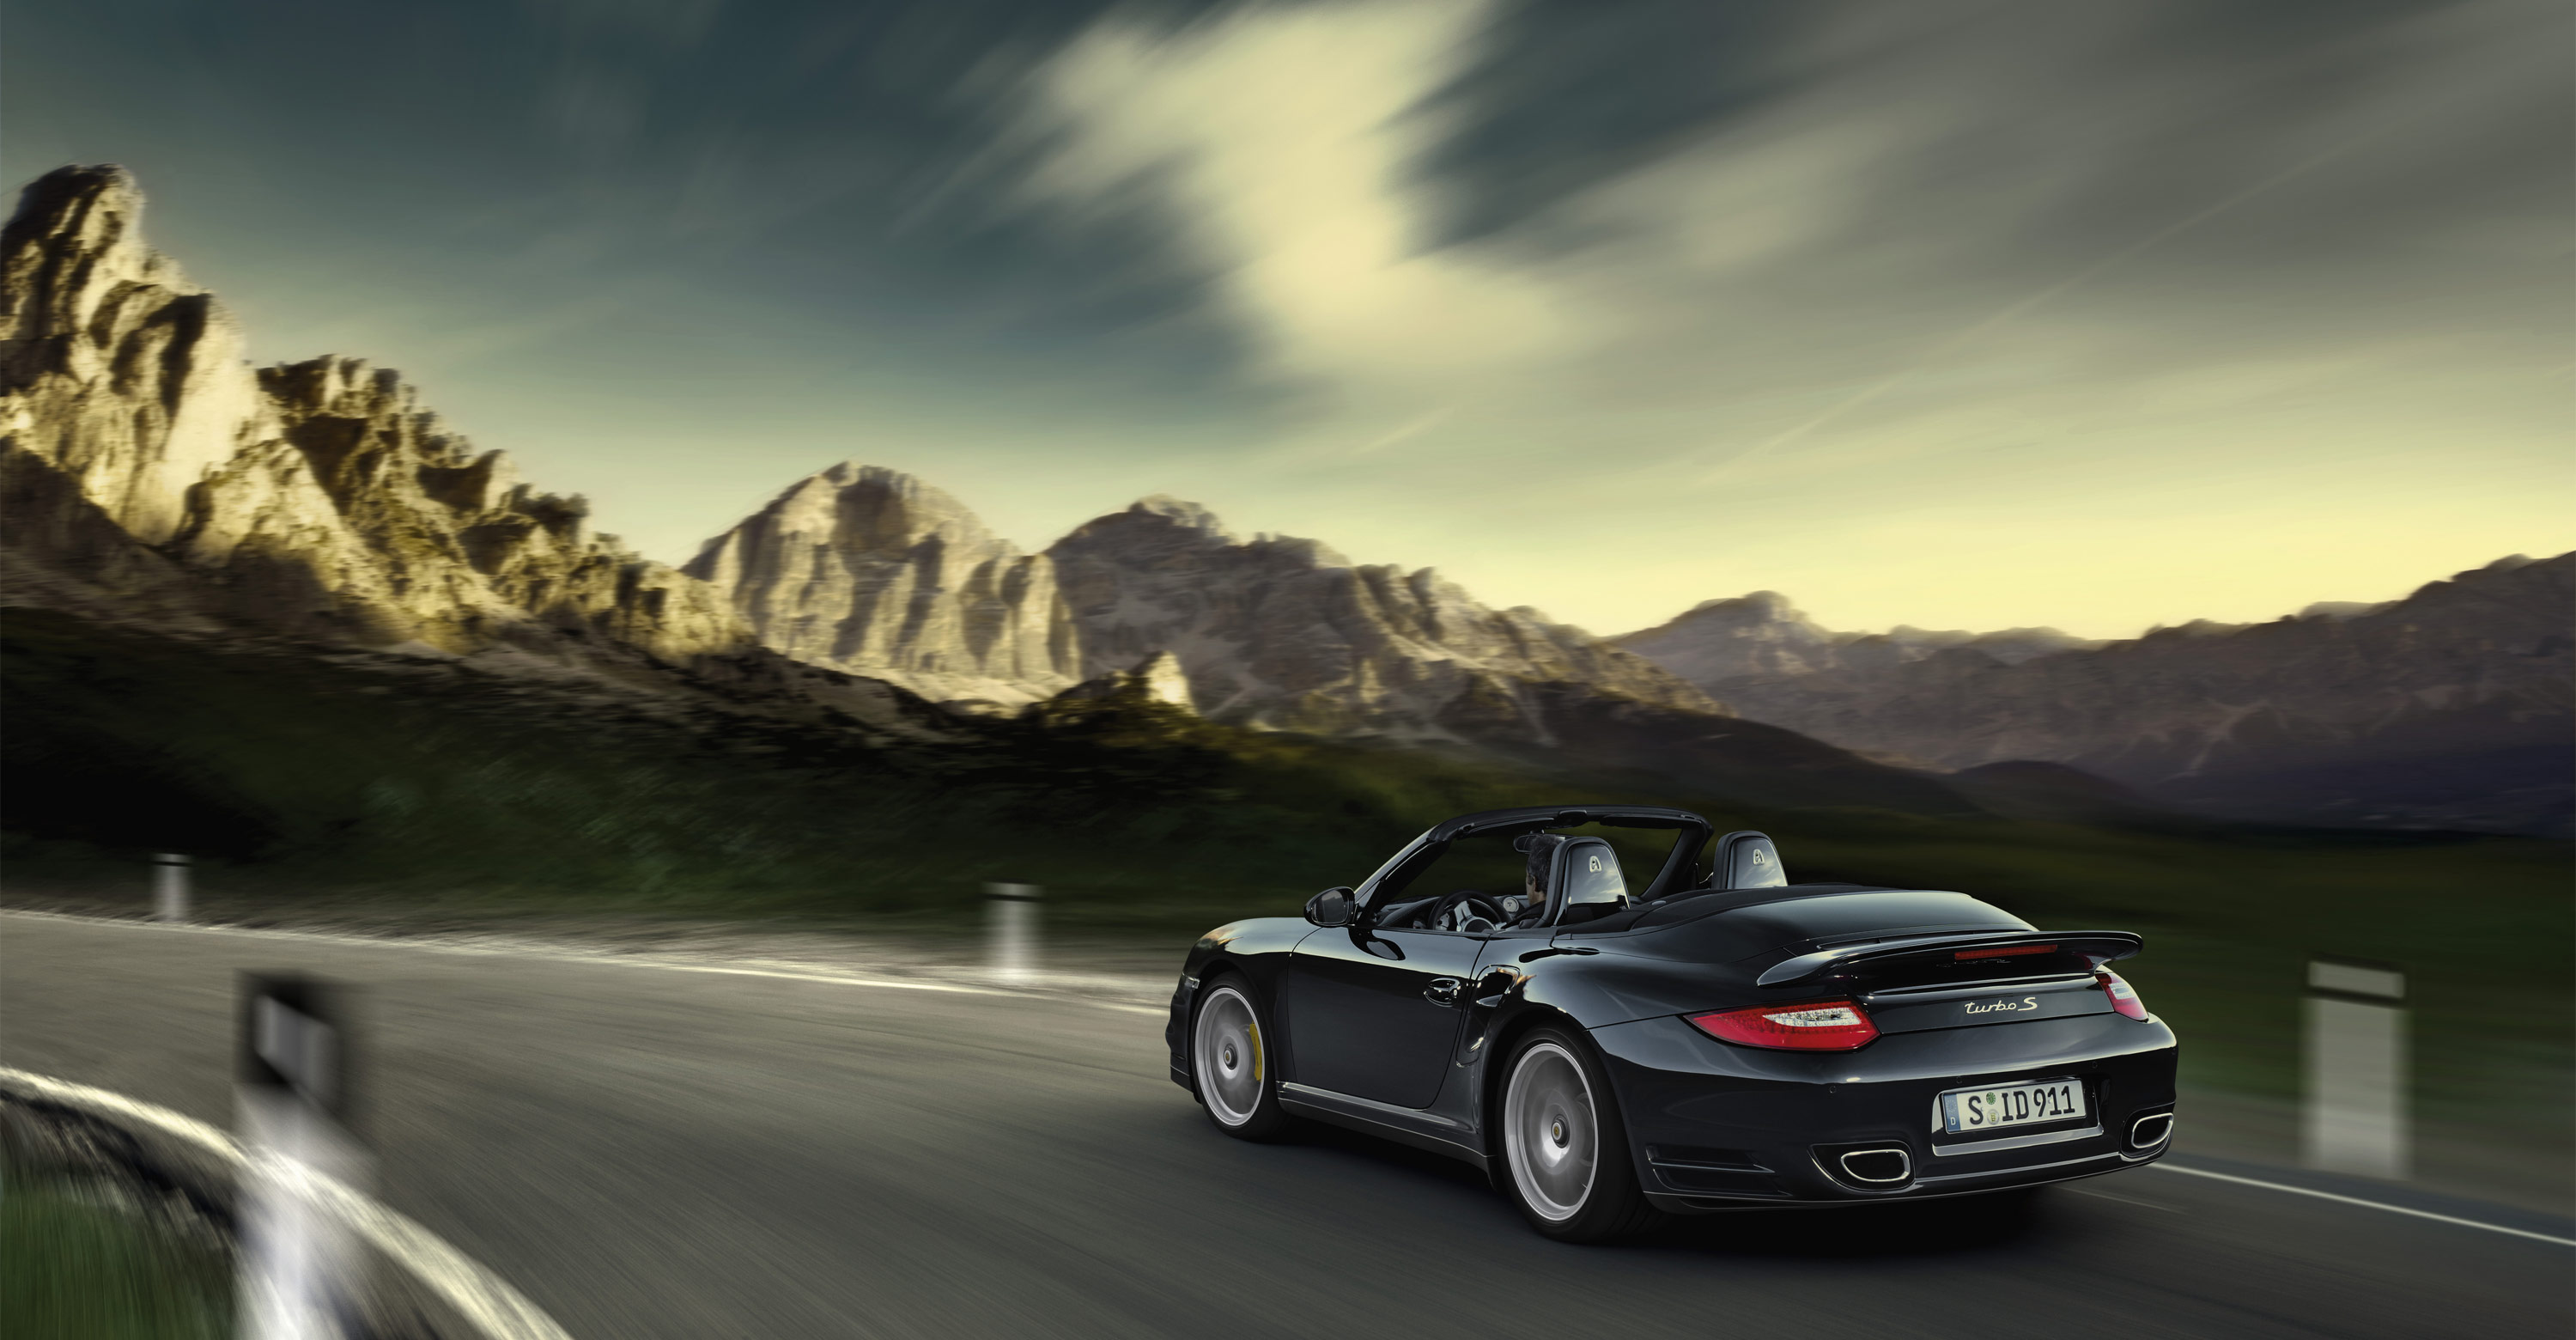 porsche wallpapers black porsche 911 2011 black porsche 911 turbo s